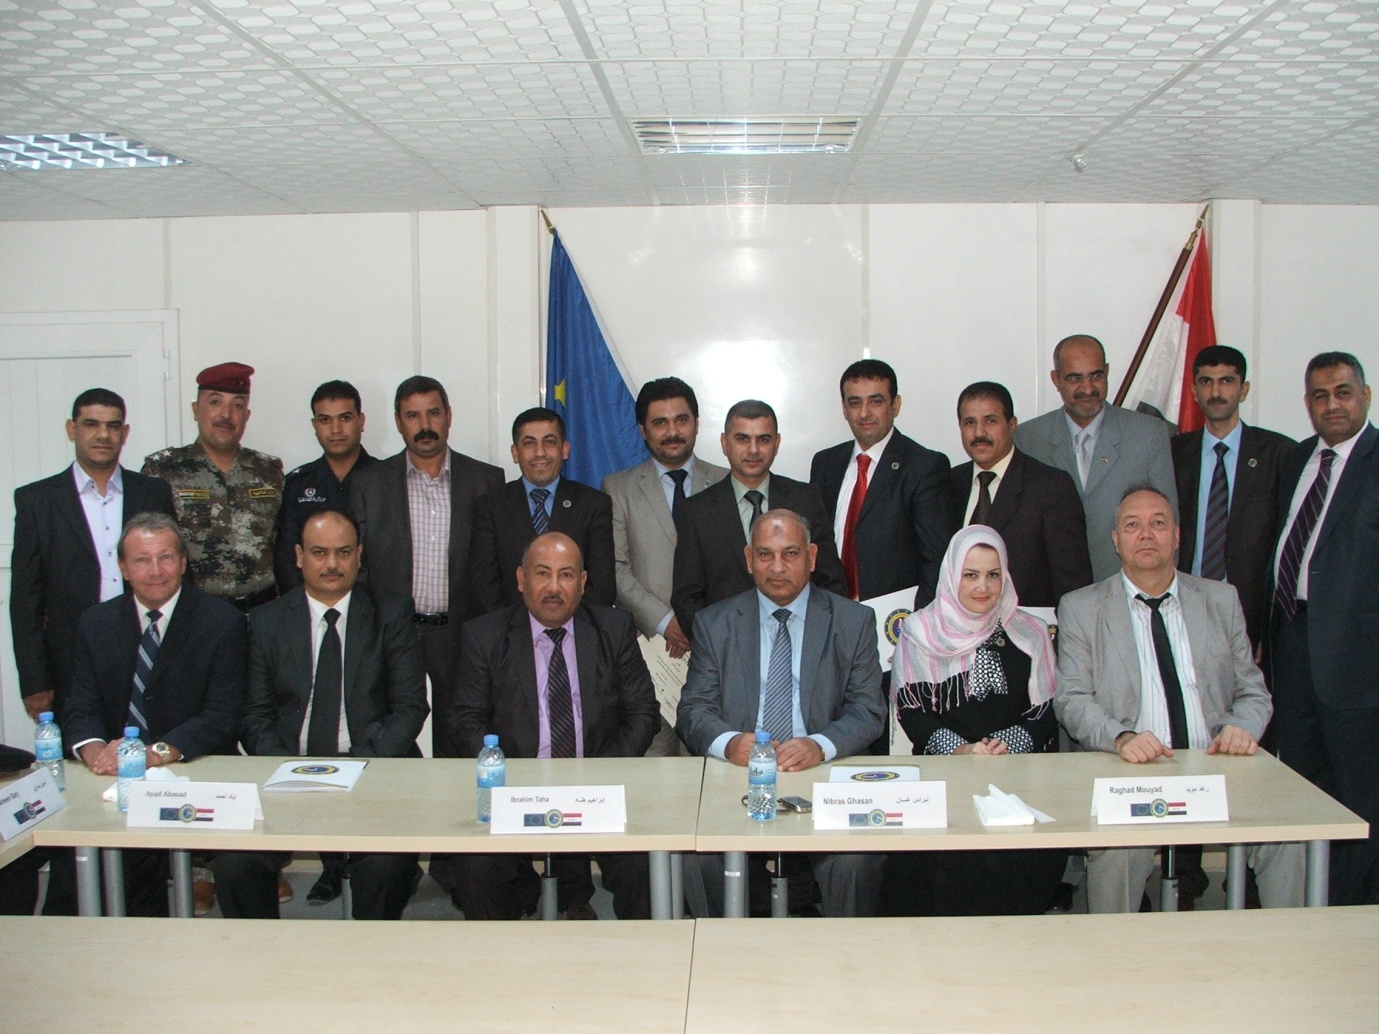 Anton Girginov, Head of the Judiciary Team at EUJUST LEX-Iraq (seated right) and Dave Bramley, Head of Office at the Basra Antenna (seated left) with participants in the Course on obtaining legal assistance from abroad.